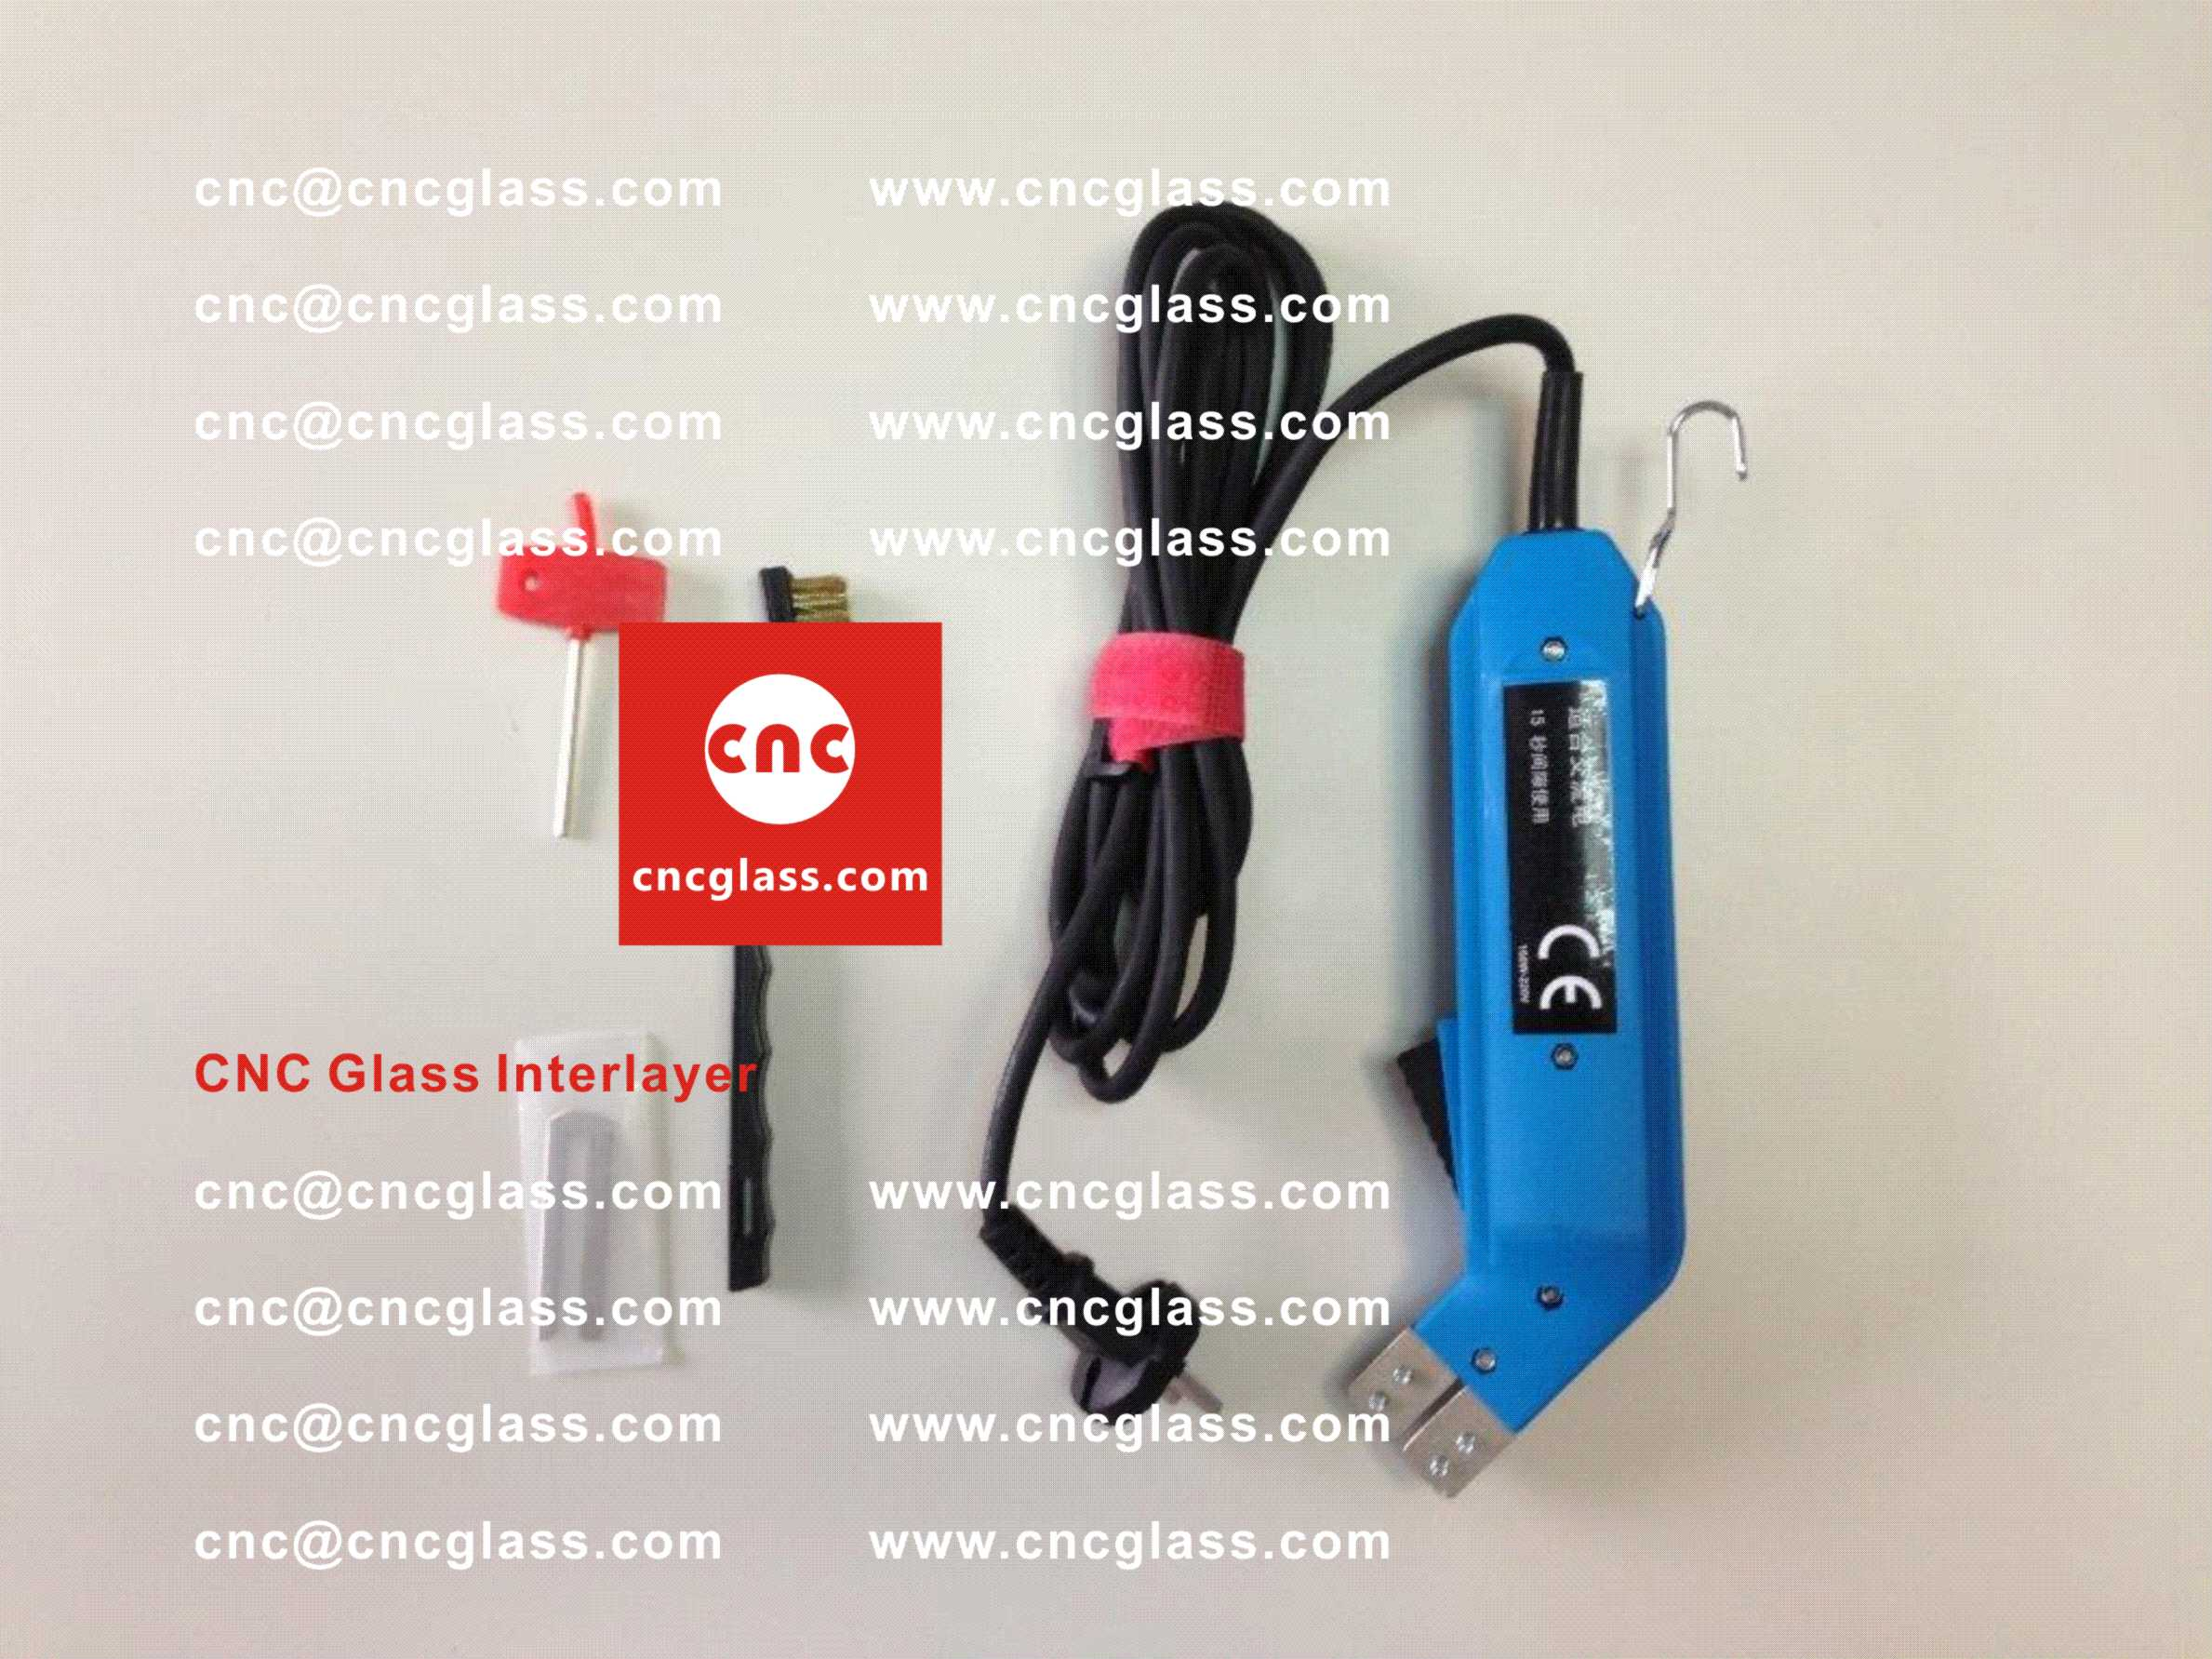 007 Thermal Cutter cleaning overflowed remains of EVA film, PVB film laminated glass